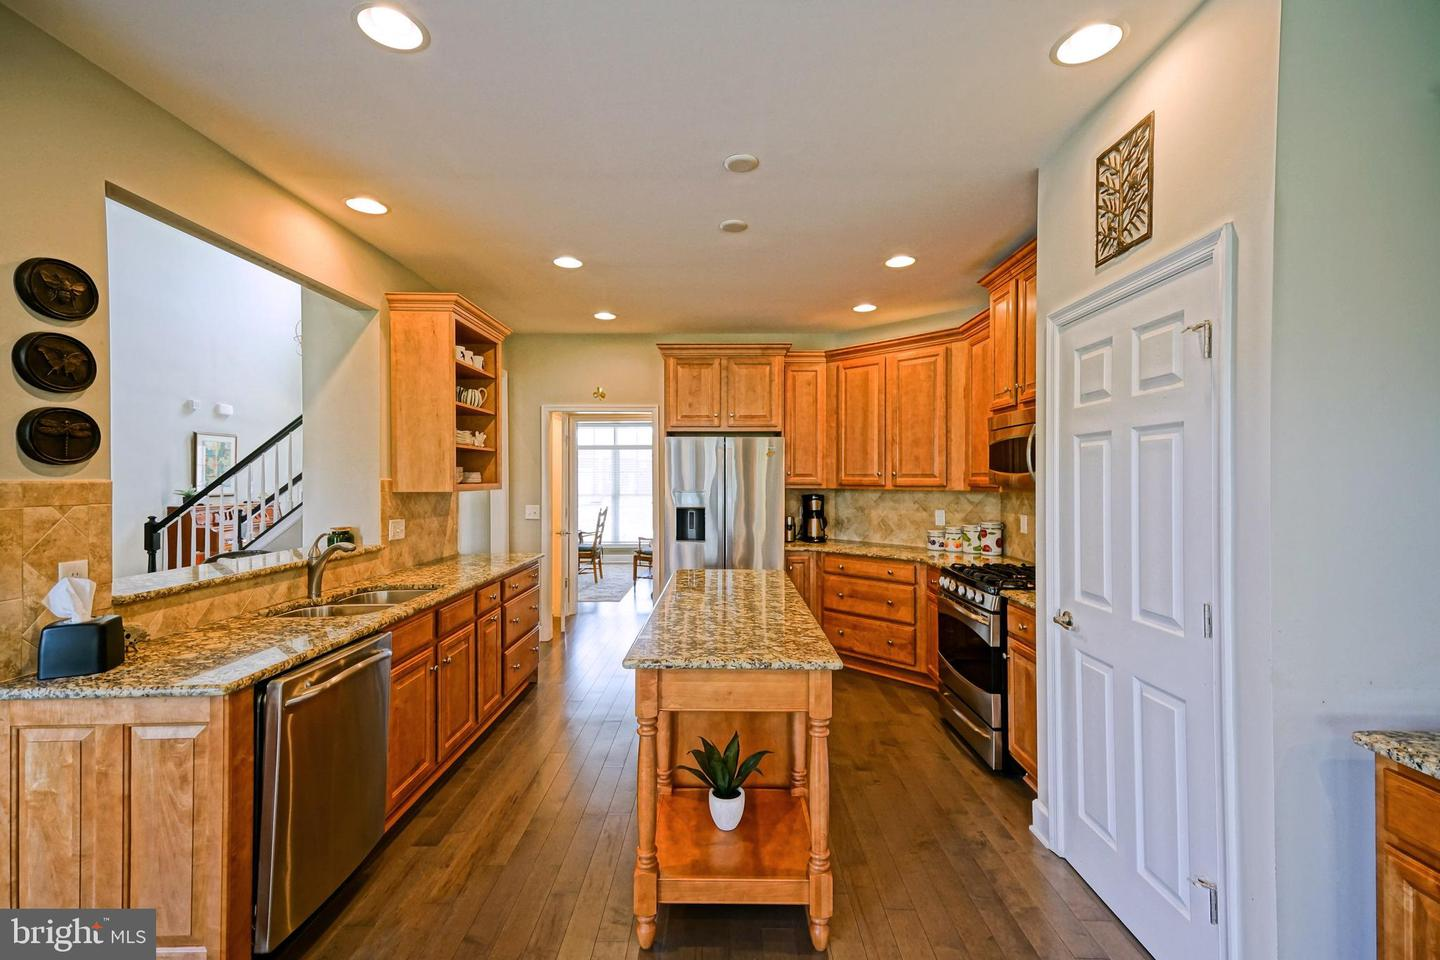 DESU139128-301667381203-2019-08-05-10-43-56 35222 Overfalls Dr N | Lewes, DE Real Estate For Sale | MLS# Desu139128  - Lee Ann Group